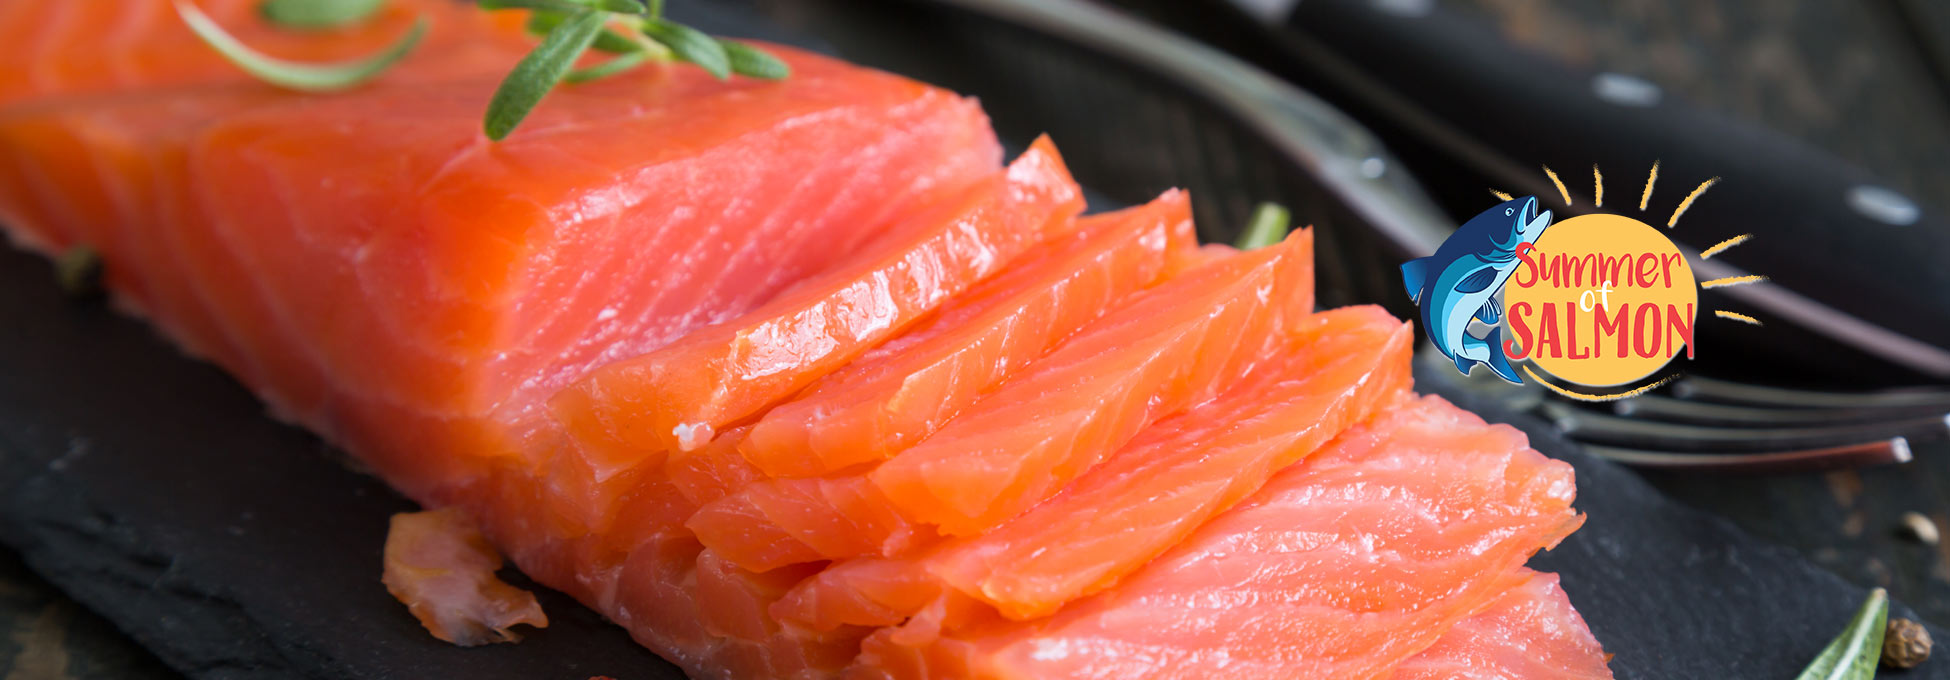 trigs-homepg-banner-summer-of-salmon.jpg